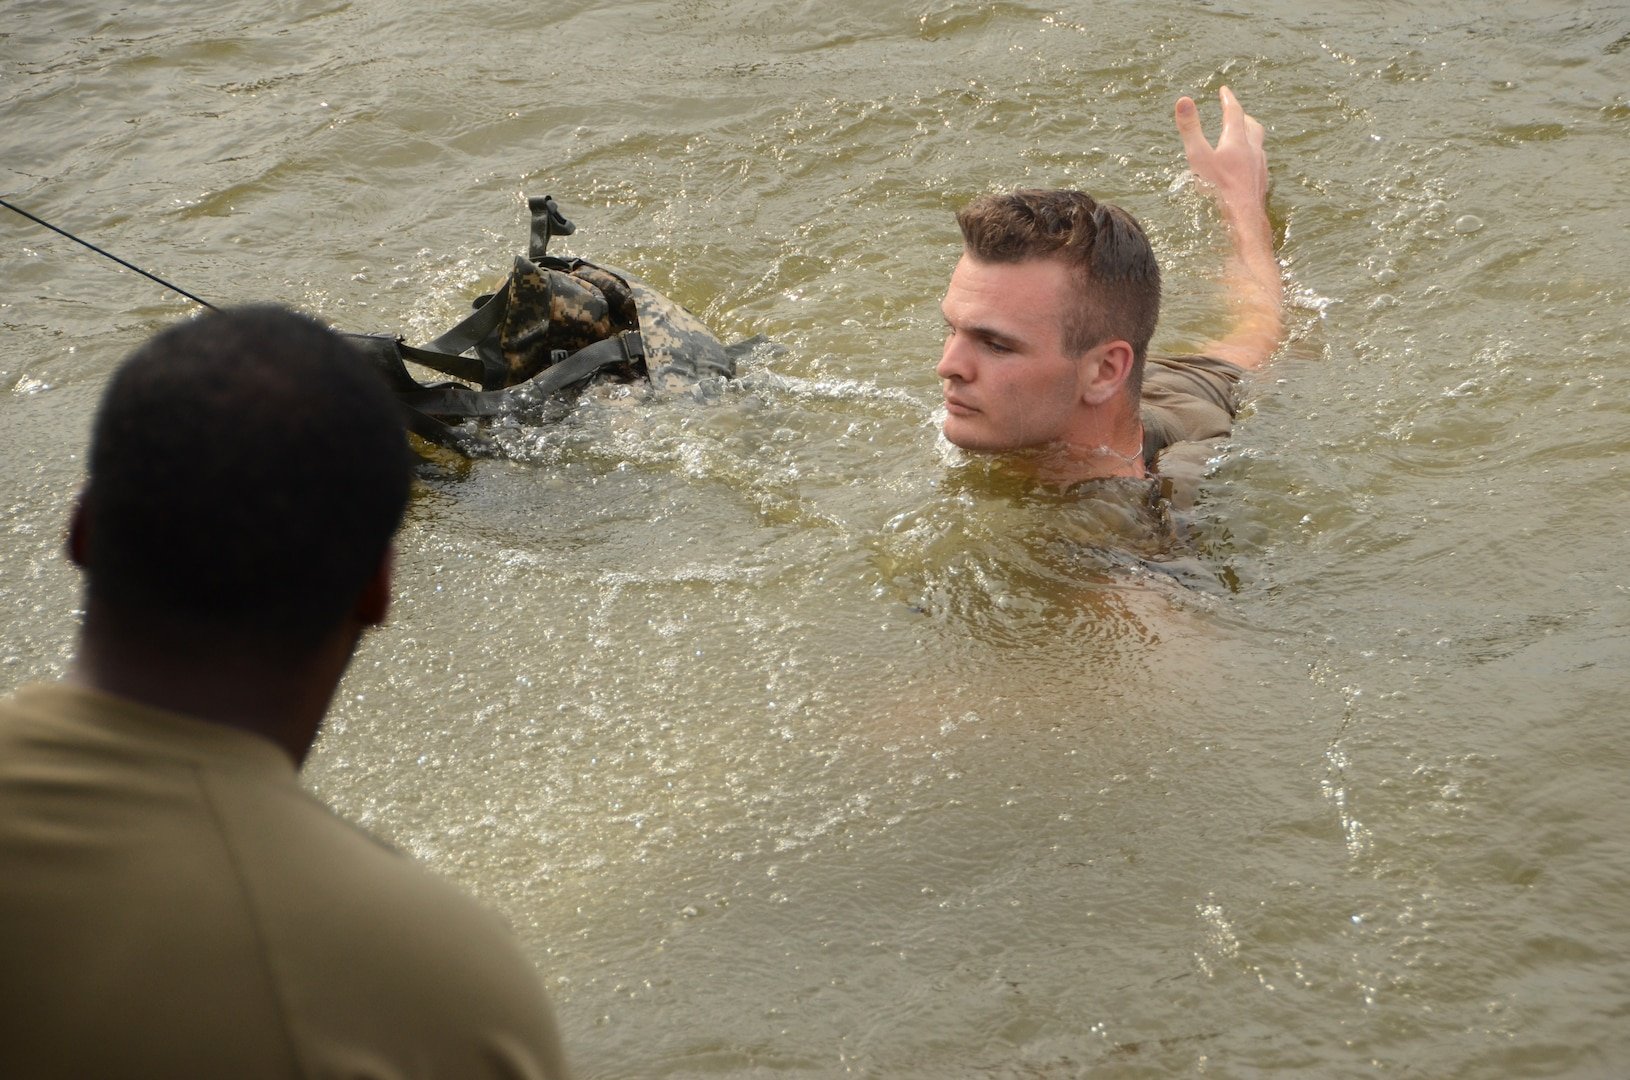 Spc. Braxton Todd, a Virginia National Guard Soldier assigned to the Fort Belvoir-based Headquarters Battalion, 29th Infantry Division, completes the water combat survival test during Day 3 of the Region II Best Warrior Competition, July 30, 2020, at Edgewood Area Aberdeen Proving Ground, Maryland. (U.S. National Guard photo by A.J. Coyne)